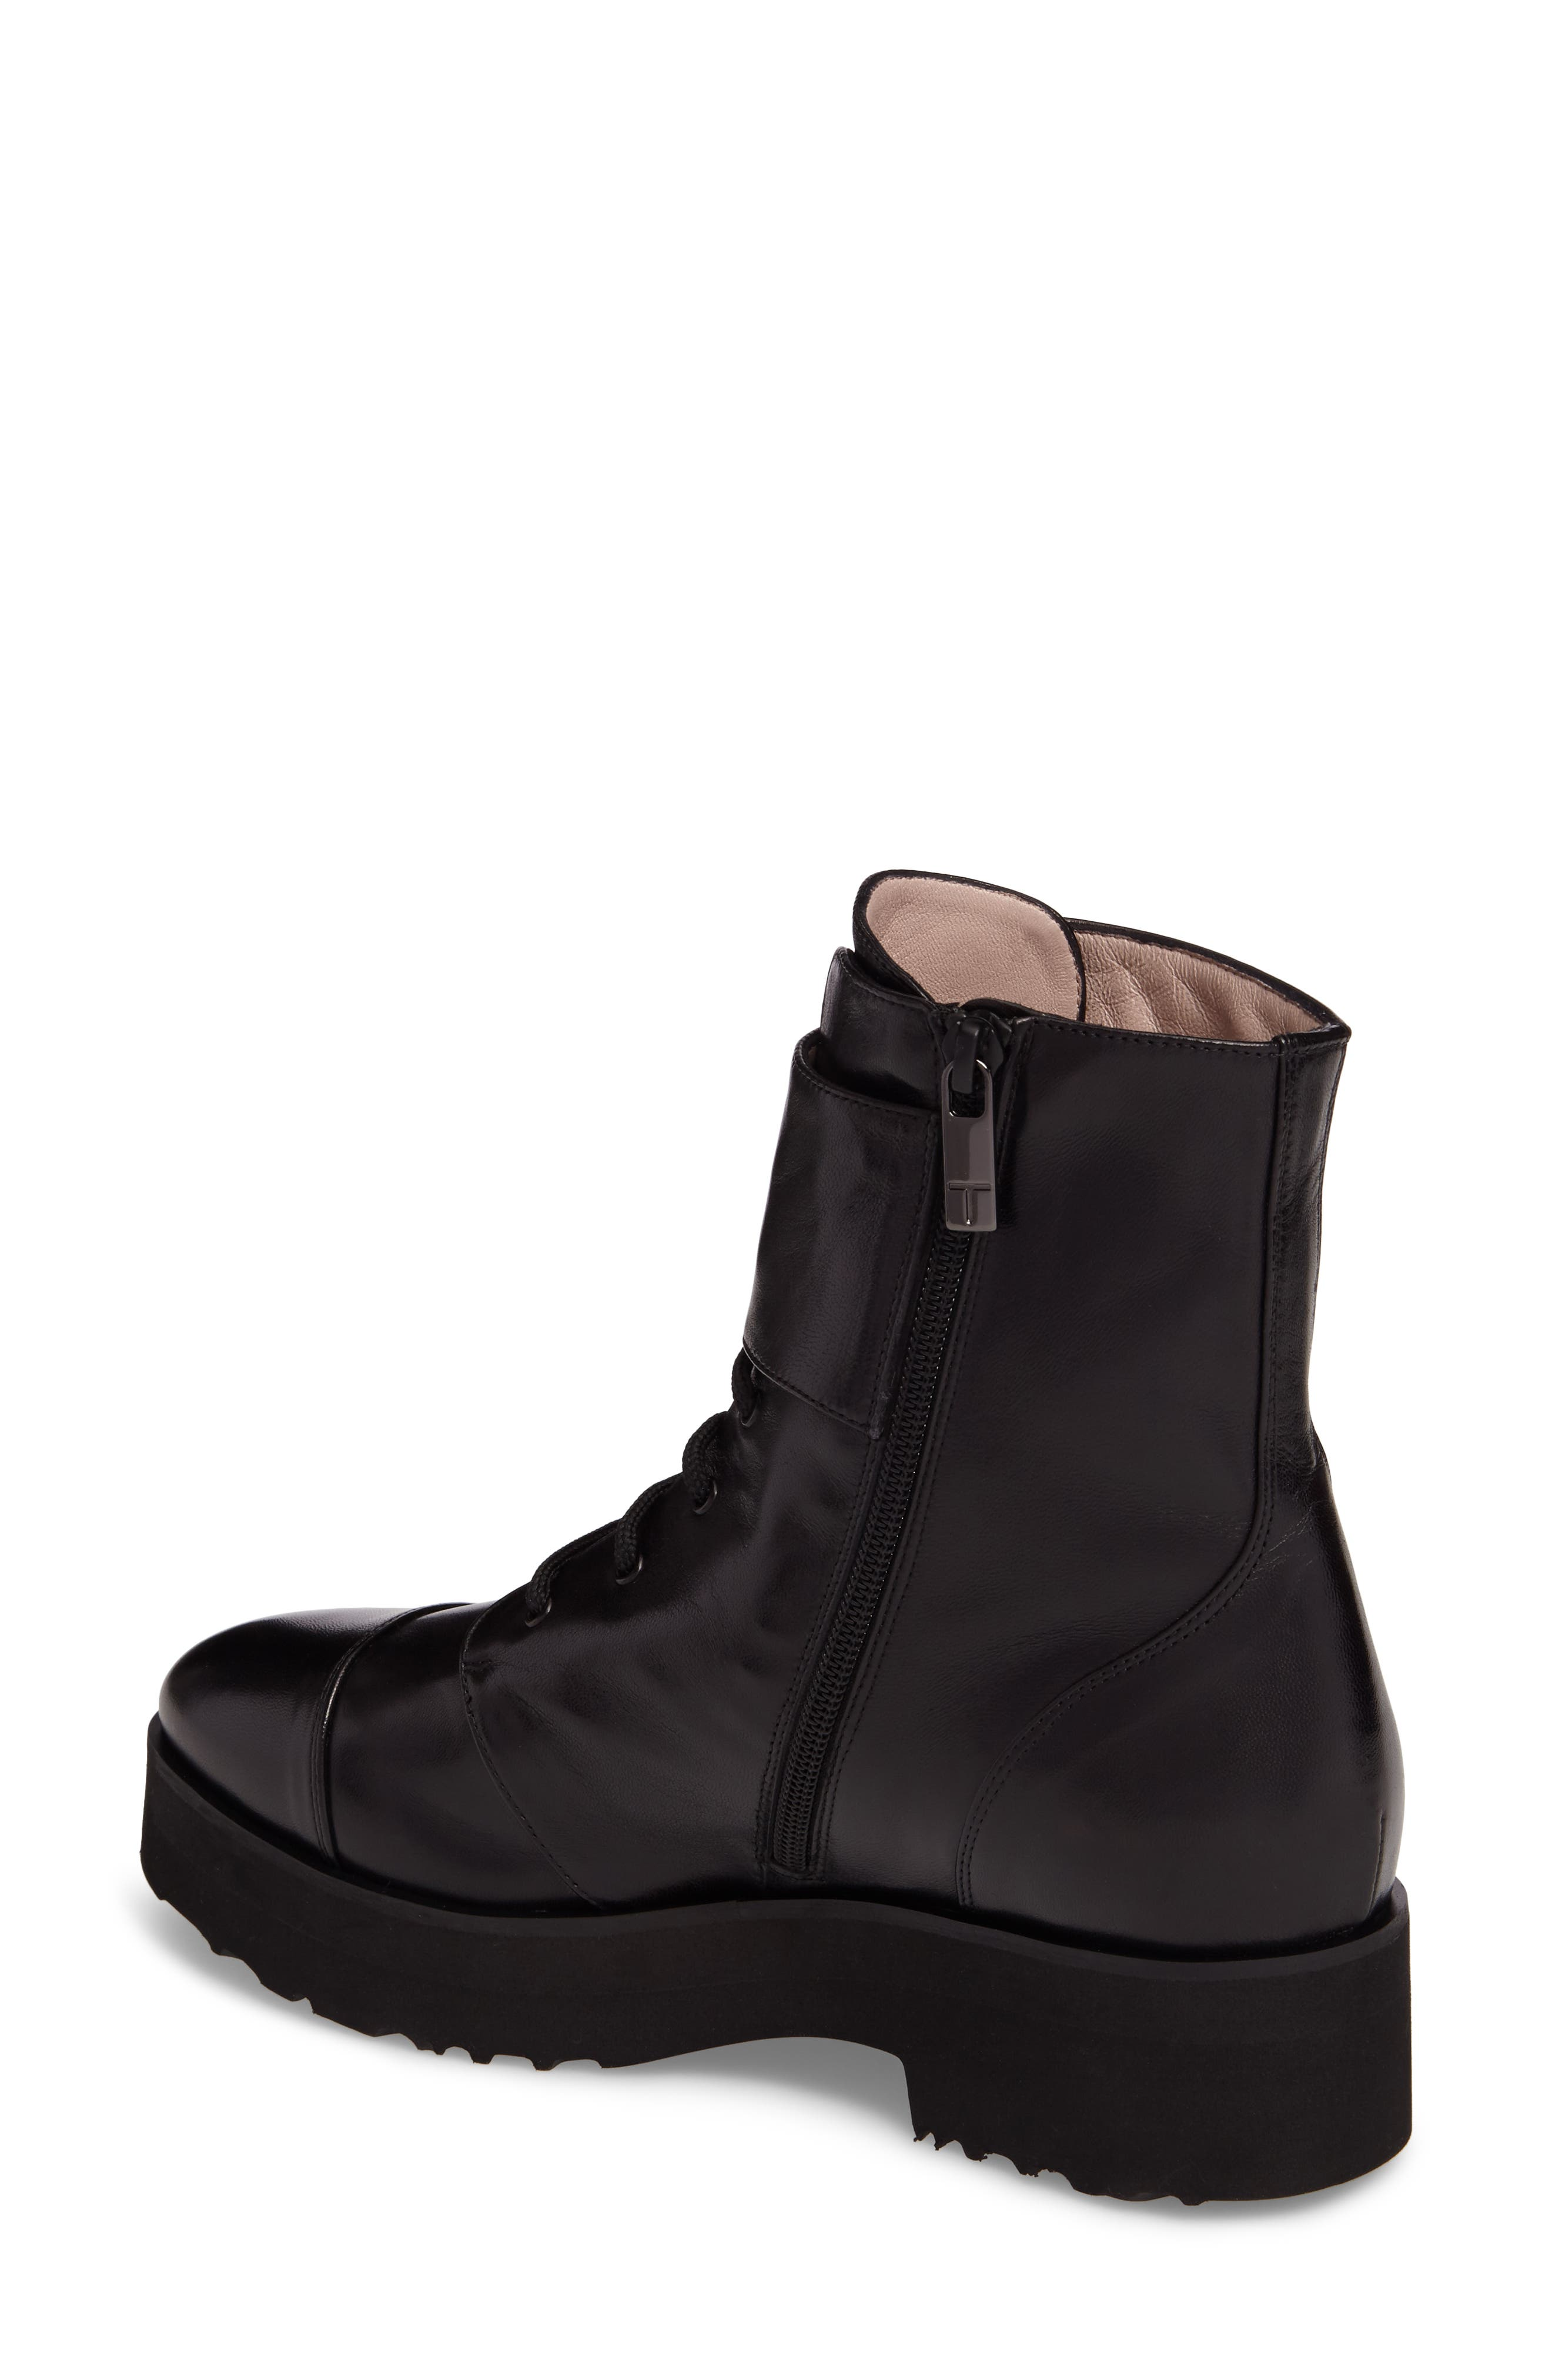 Valentina Rose Boot,                             Alternate thumbnail 2, color,                             Black Leather